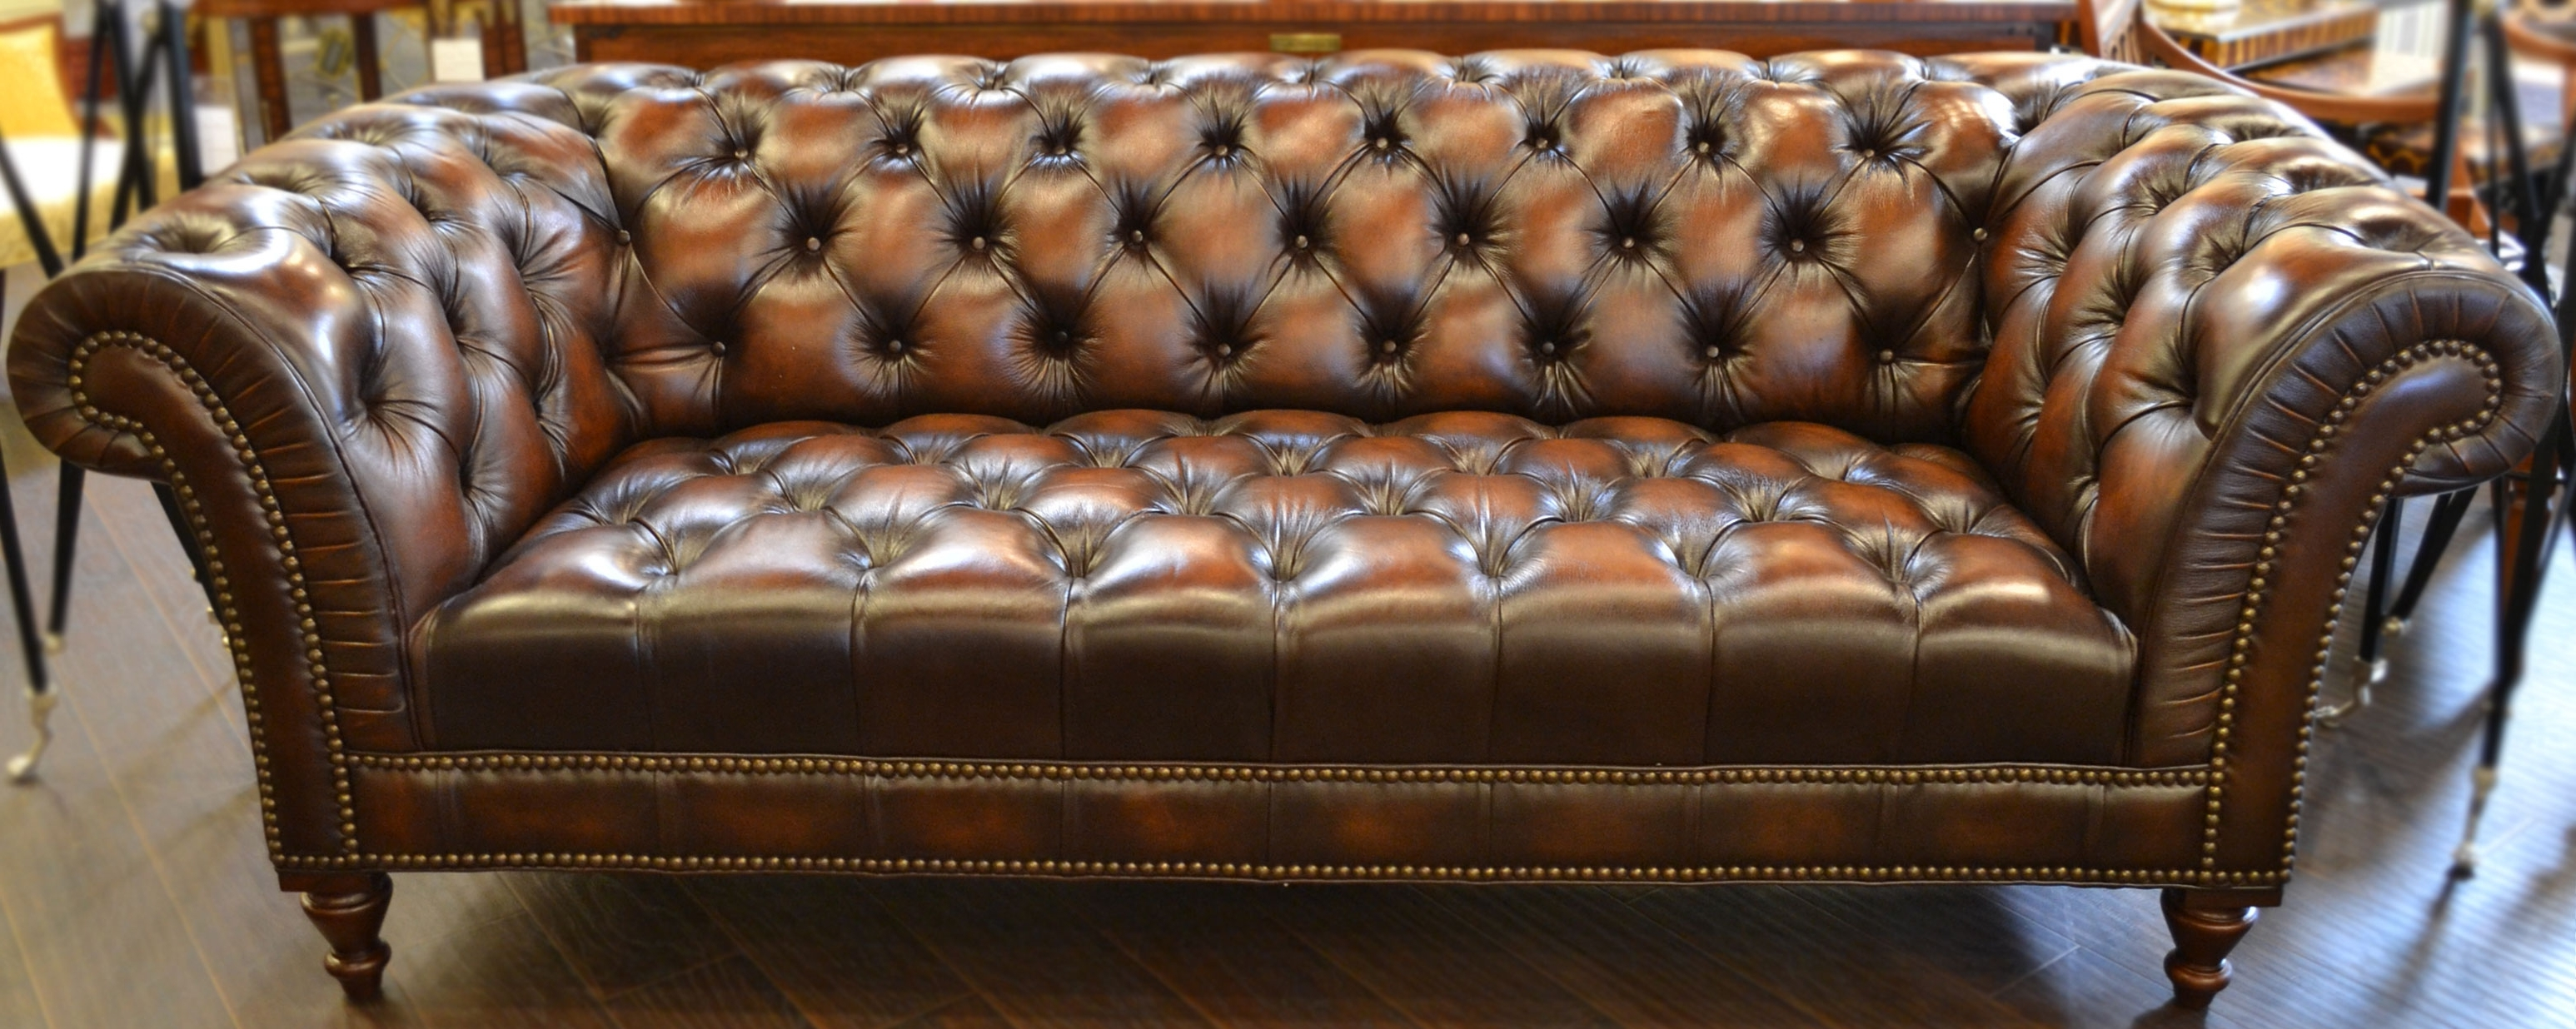 High End Sofas Pertaining To Newest High End Leather Sofa – Visionexchange (View 6 of 20)